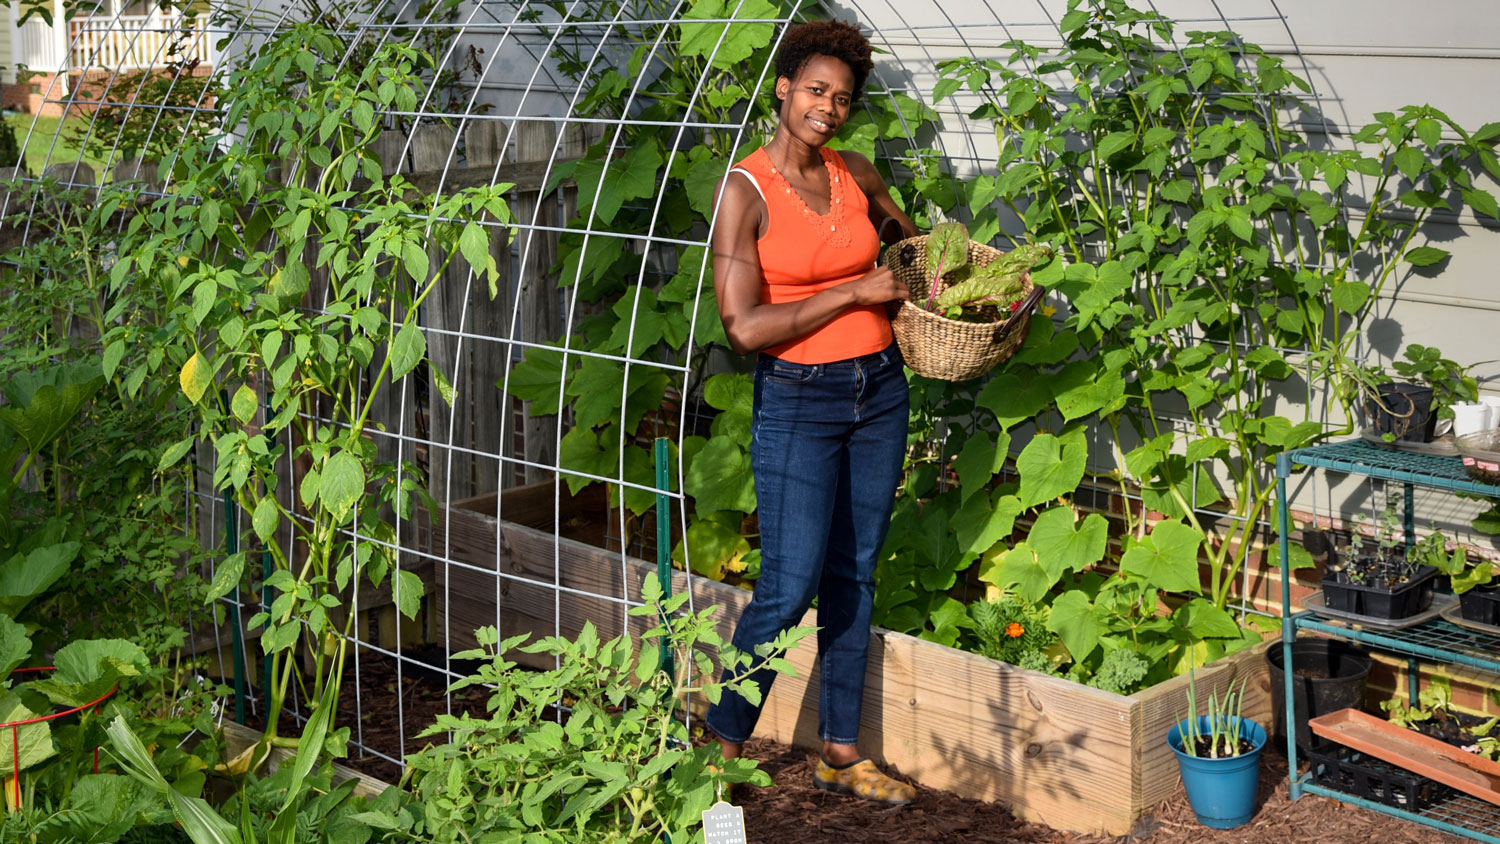 A young black woman in a garden holding a basket